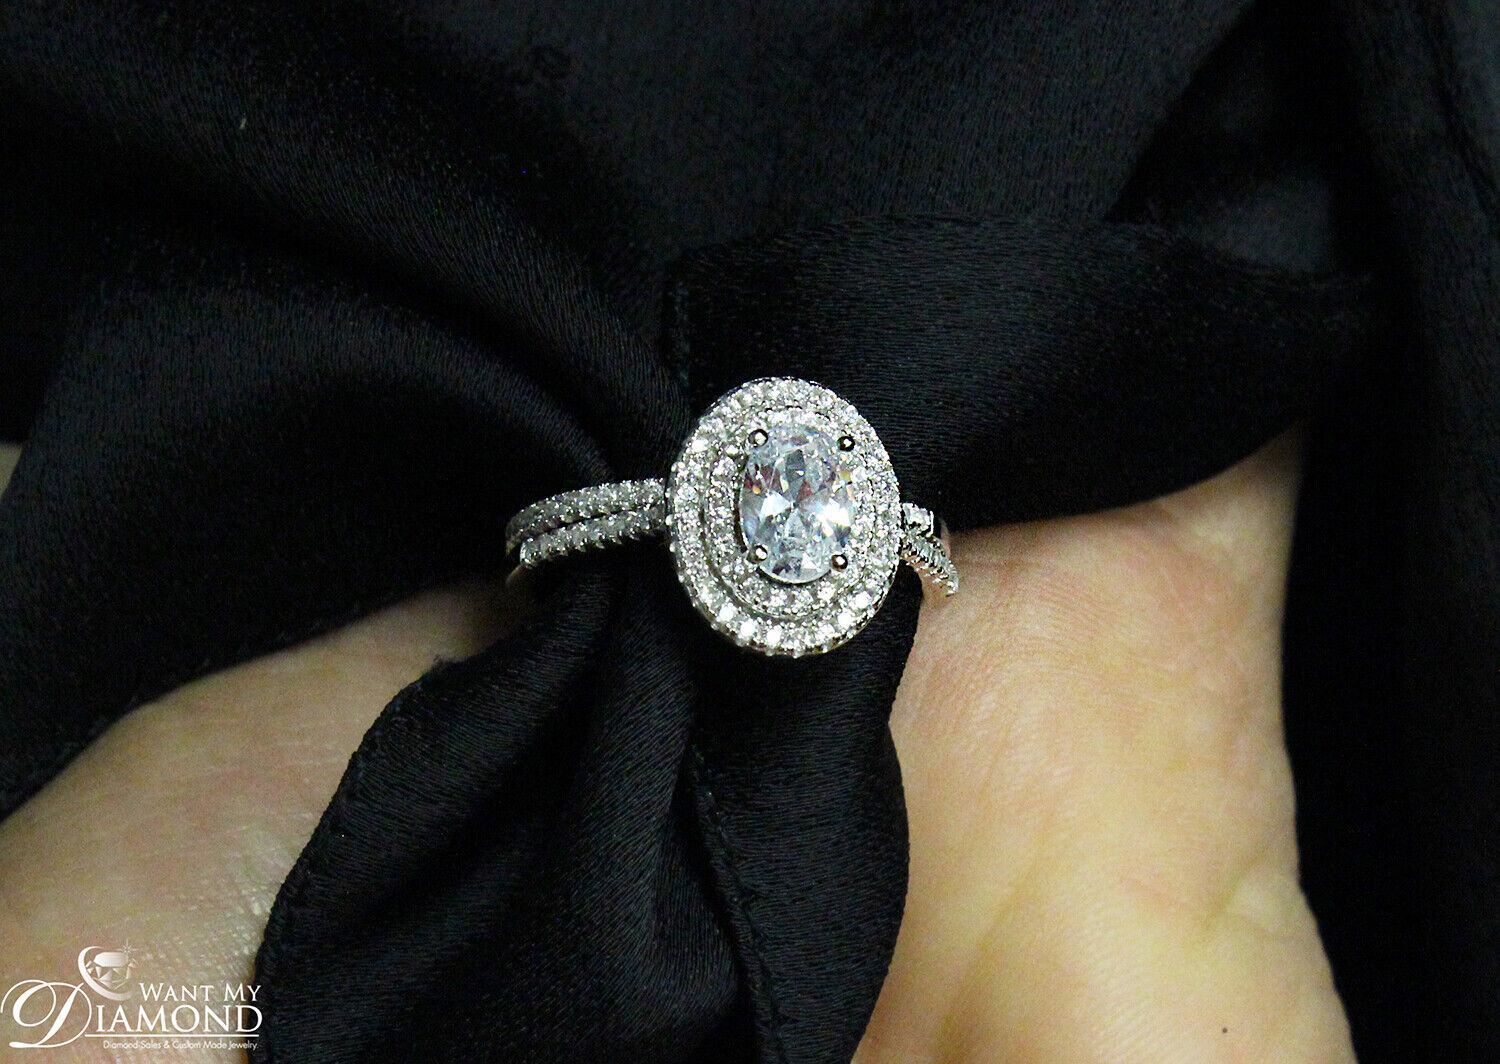 GIA Certified Diamond Engagement Double Halo Ring 1.89 CT Oval Shape 18k Gold 7